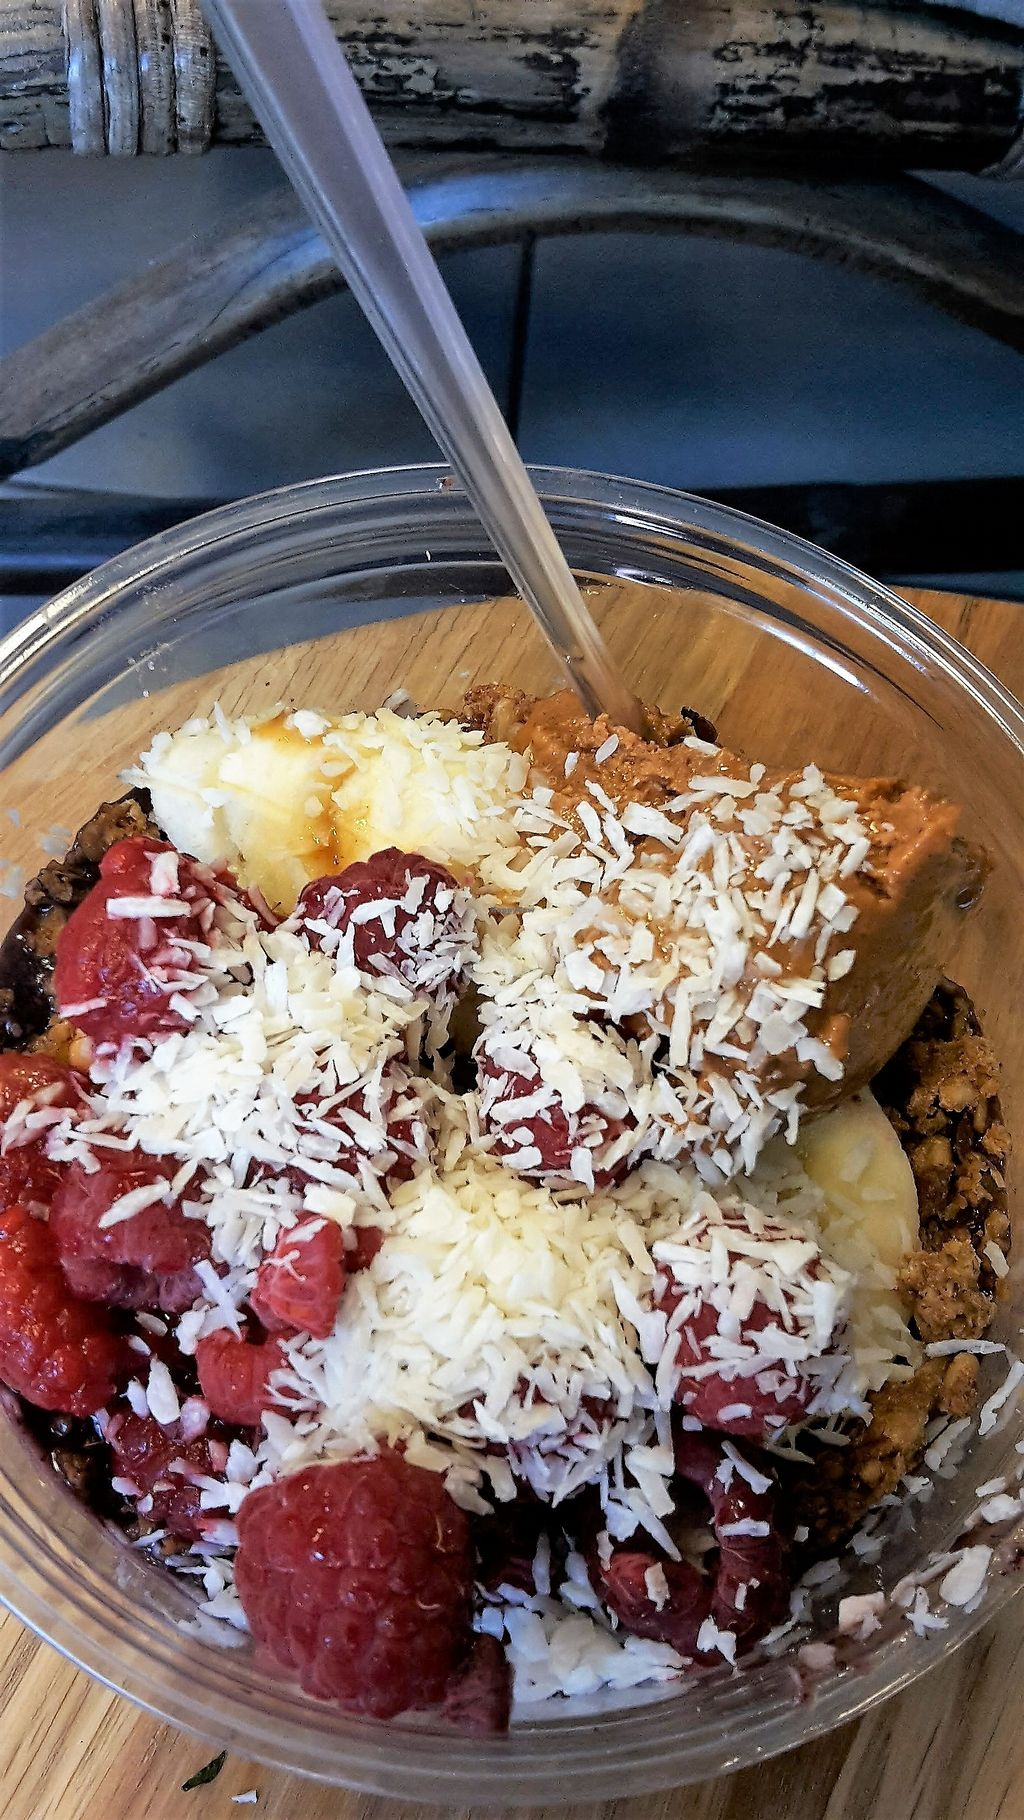 """Photo of Lotta Love  by <a href=""""/members/profile/vegankiwis"""">vegankiwis</a> <br/>""""Classic"""" bowl with acai: Bananas, granola, peanut butter, raspberries and coconut on acai <br/> June 30, 2017  - <a href='/contact/abuse/image/53915/275058'>Report</a>"""